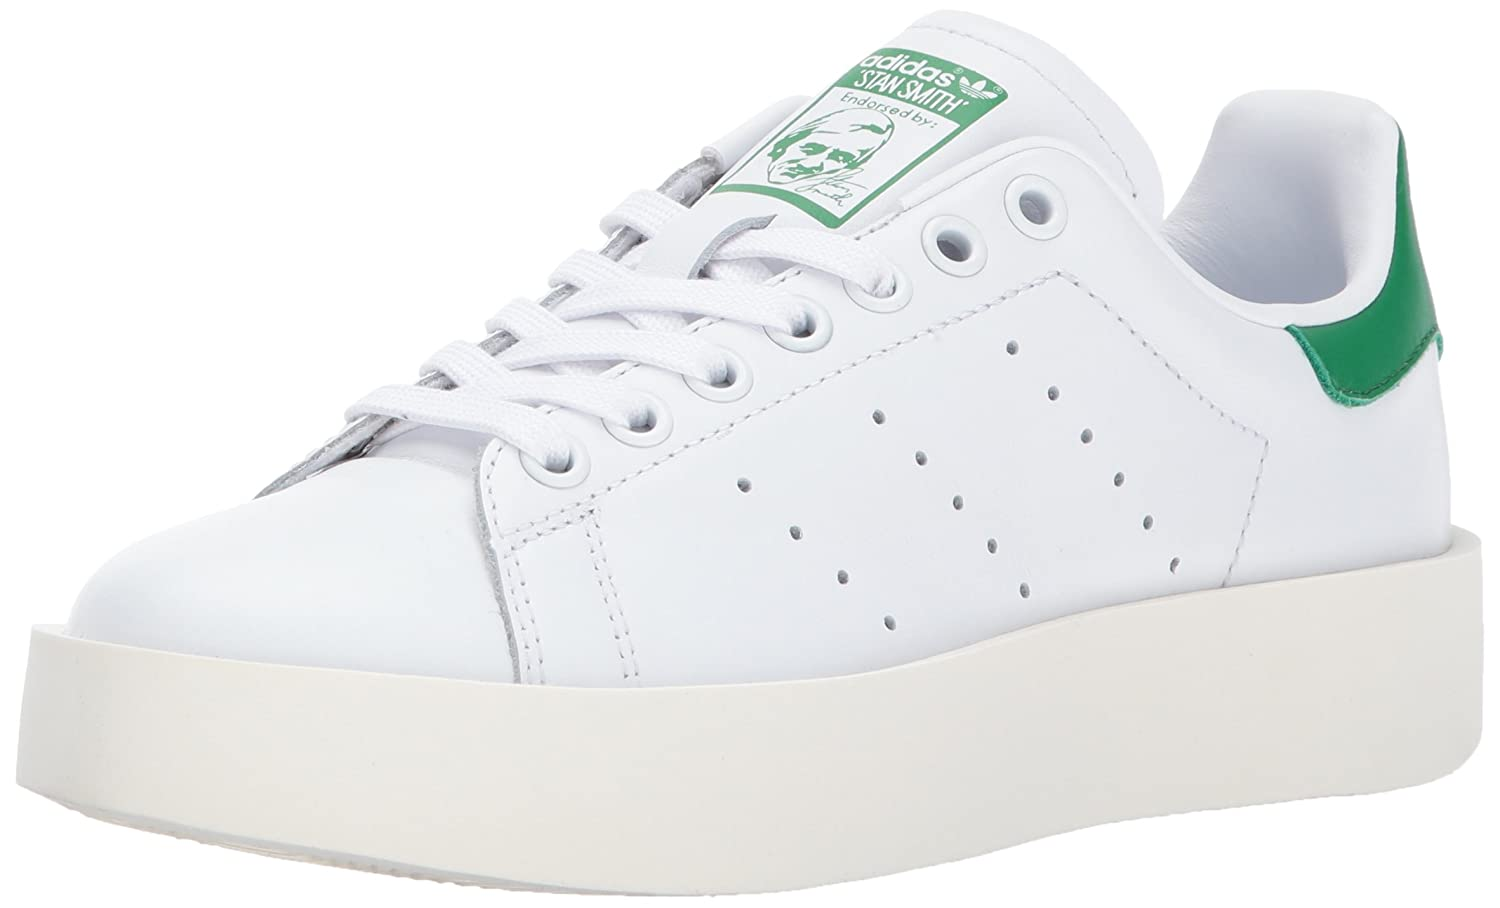 White White Green Adidas ORIGINALS Women's shoes   Stan Smith Bold Sneakers